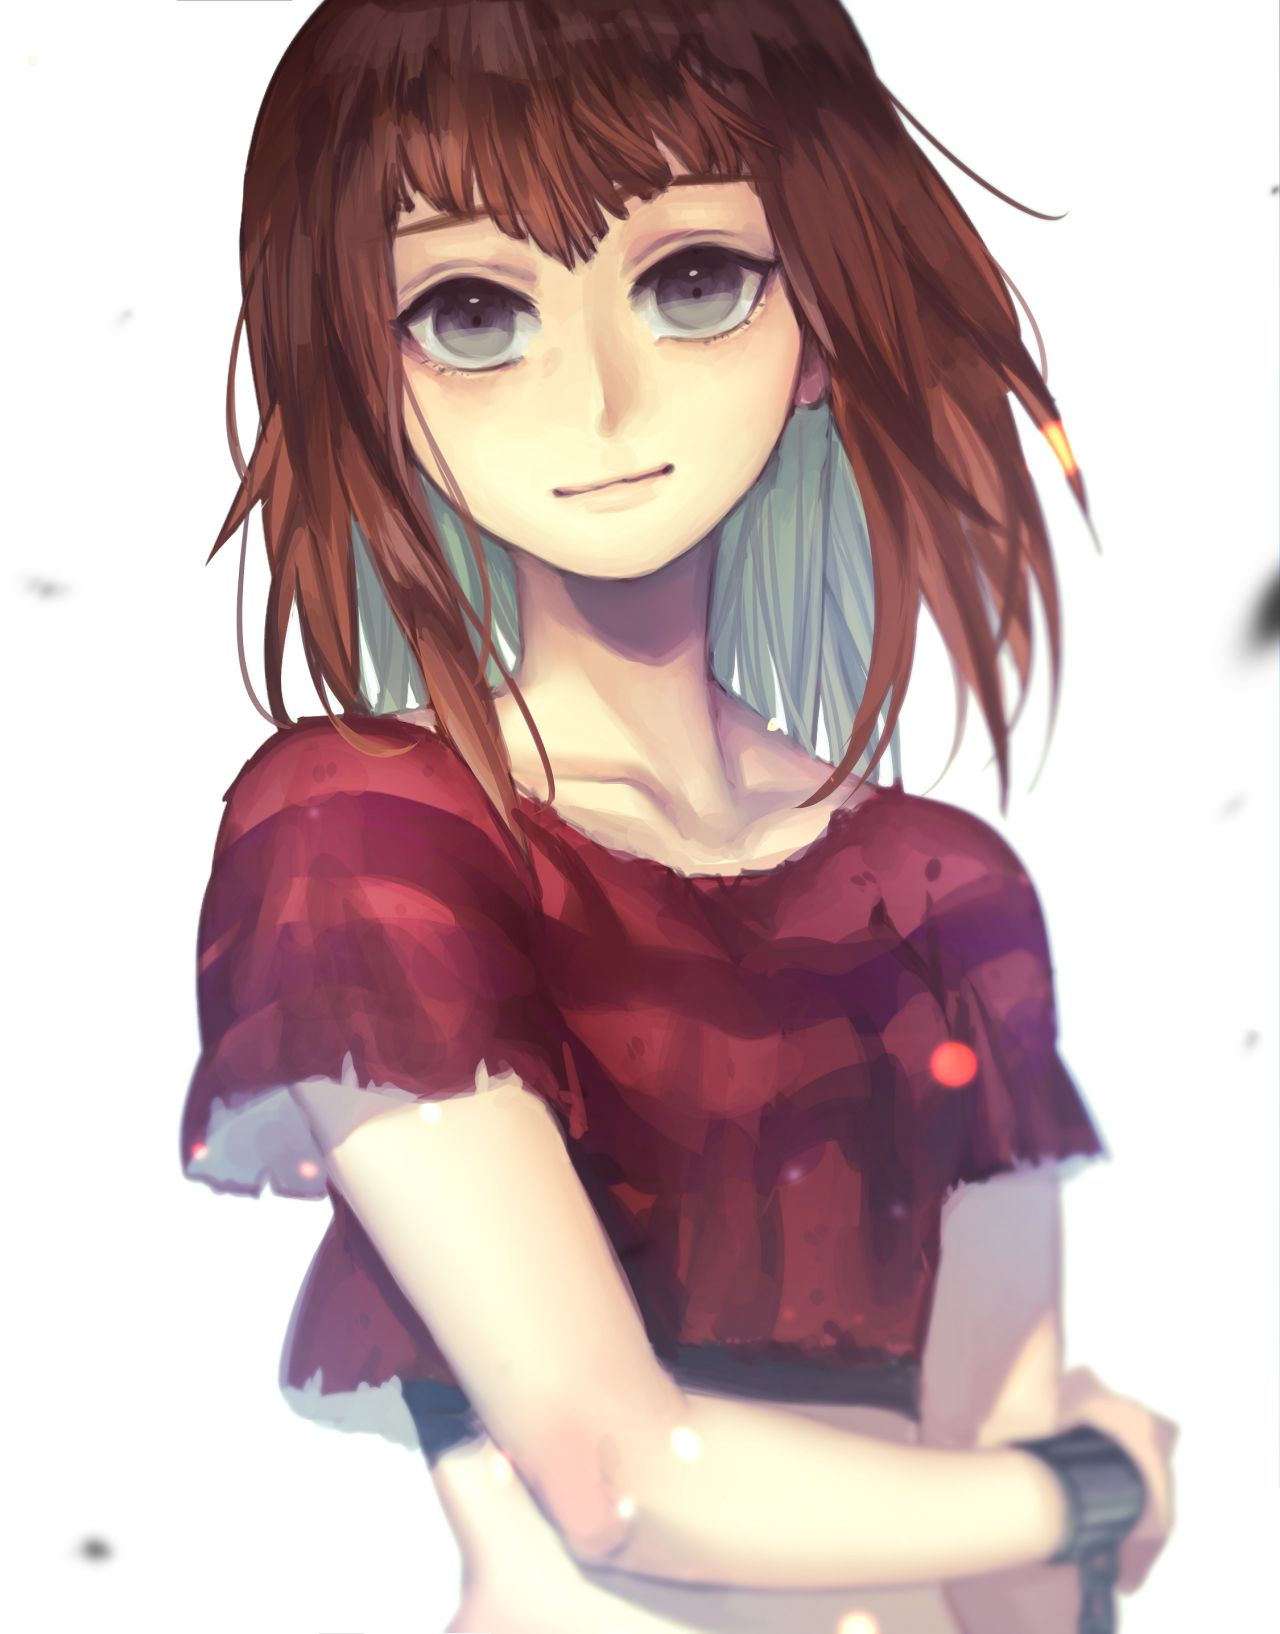 Female Anime Characters Male Reader : Tags fanart png conversion tumblr noah pixiv